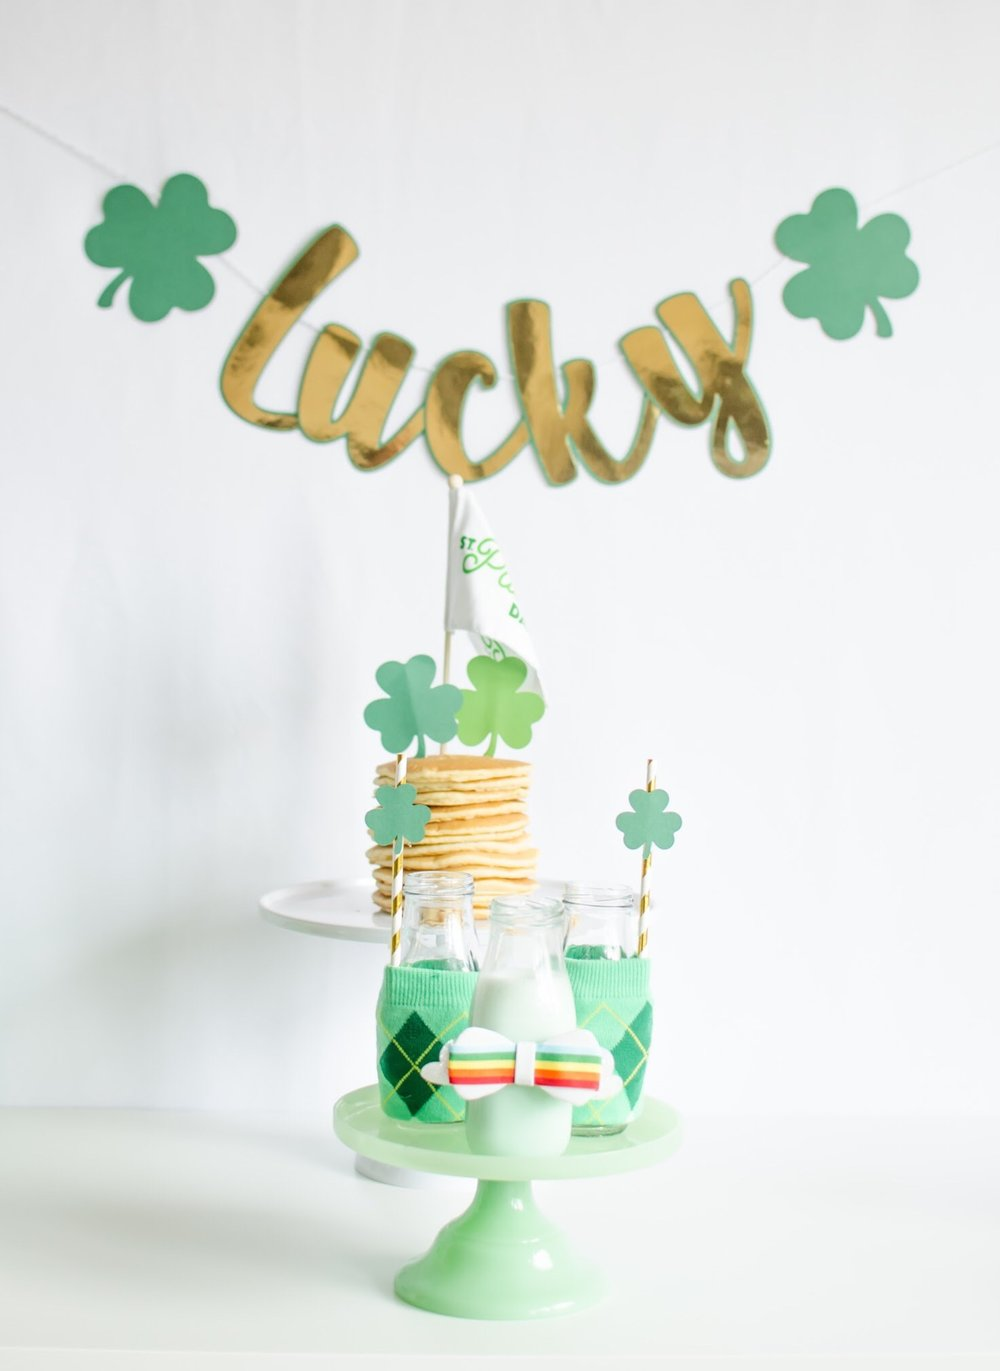 See all the green party details from this Saint Patricks Day Breakfast on Mint Event Design www.minteventdesign.com #partyideas #partydecorations #breakfastfood #saintpatricksday #stpatricksday #pancakes